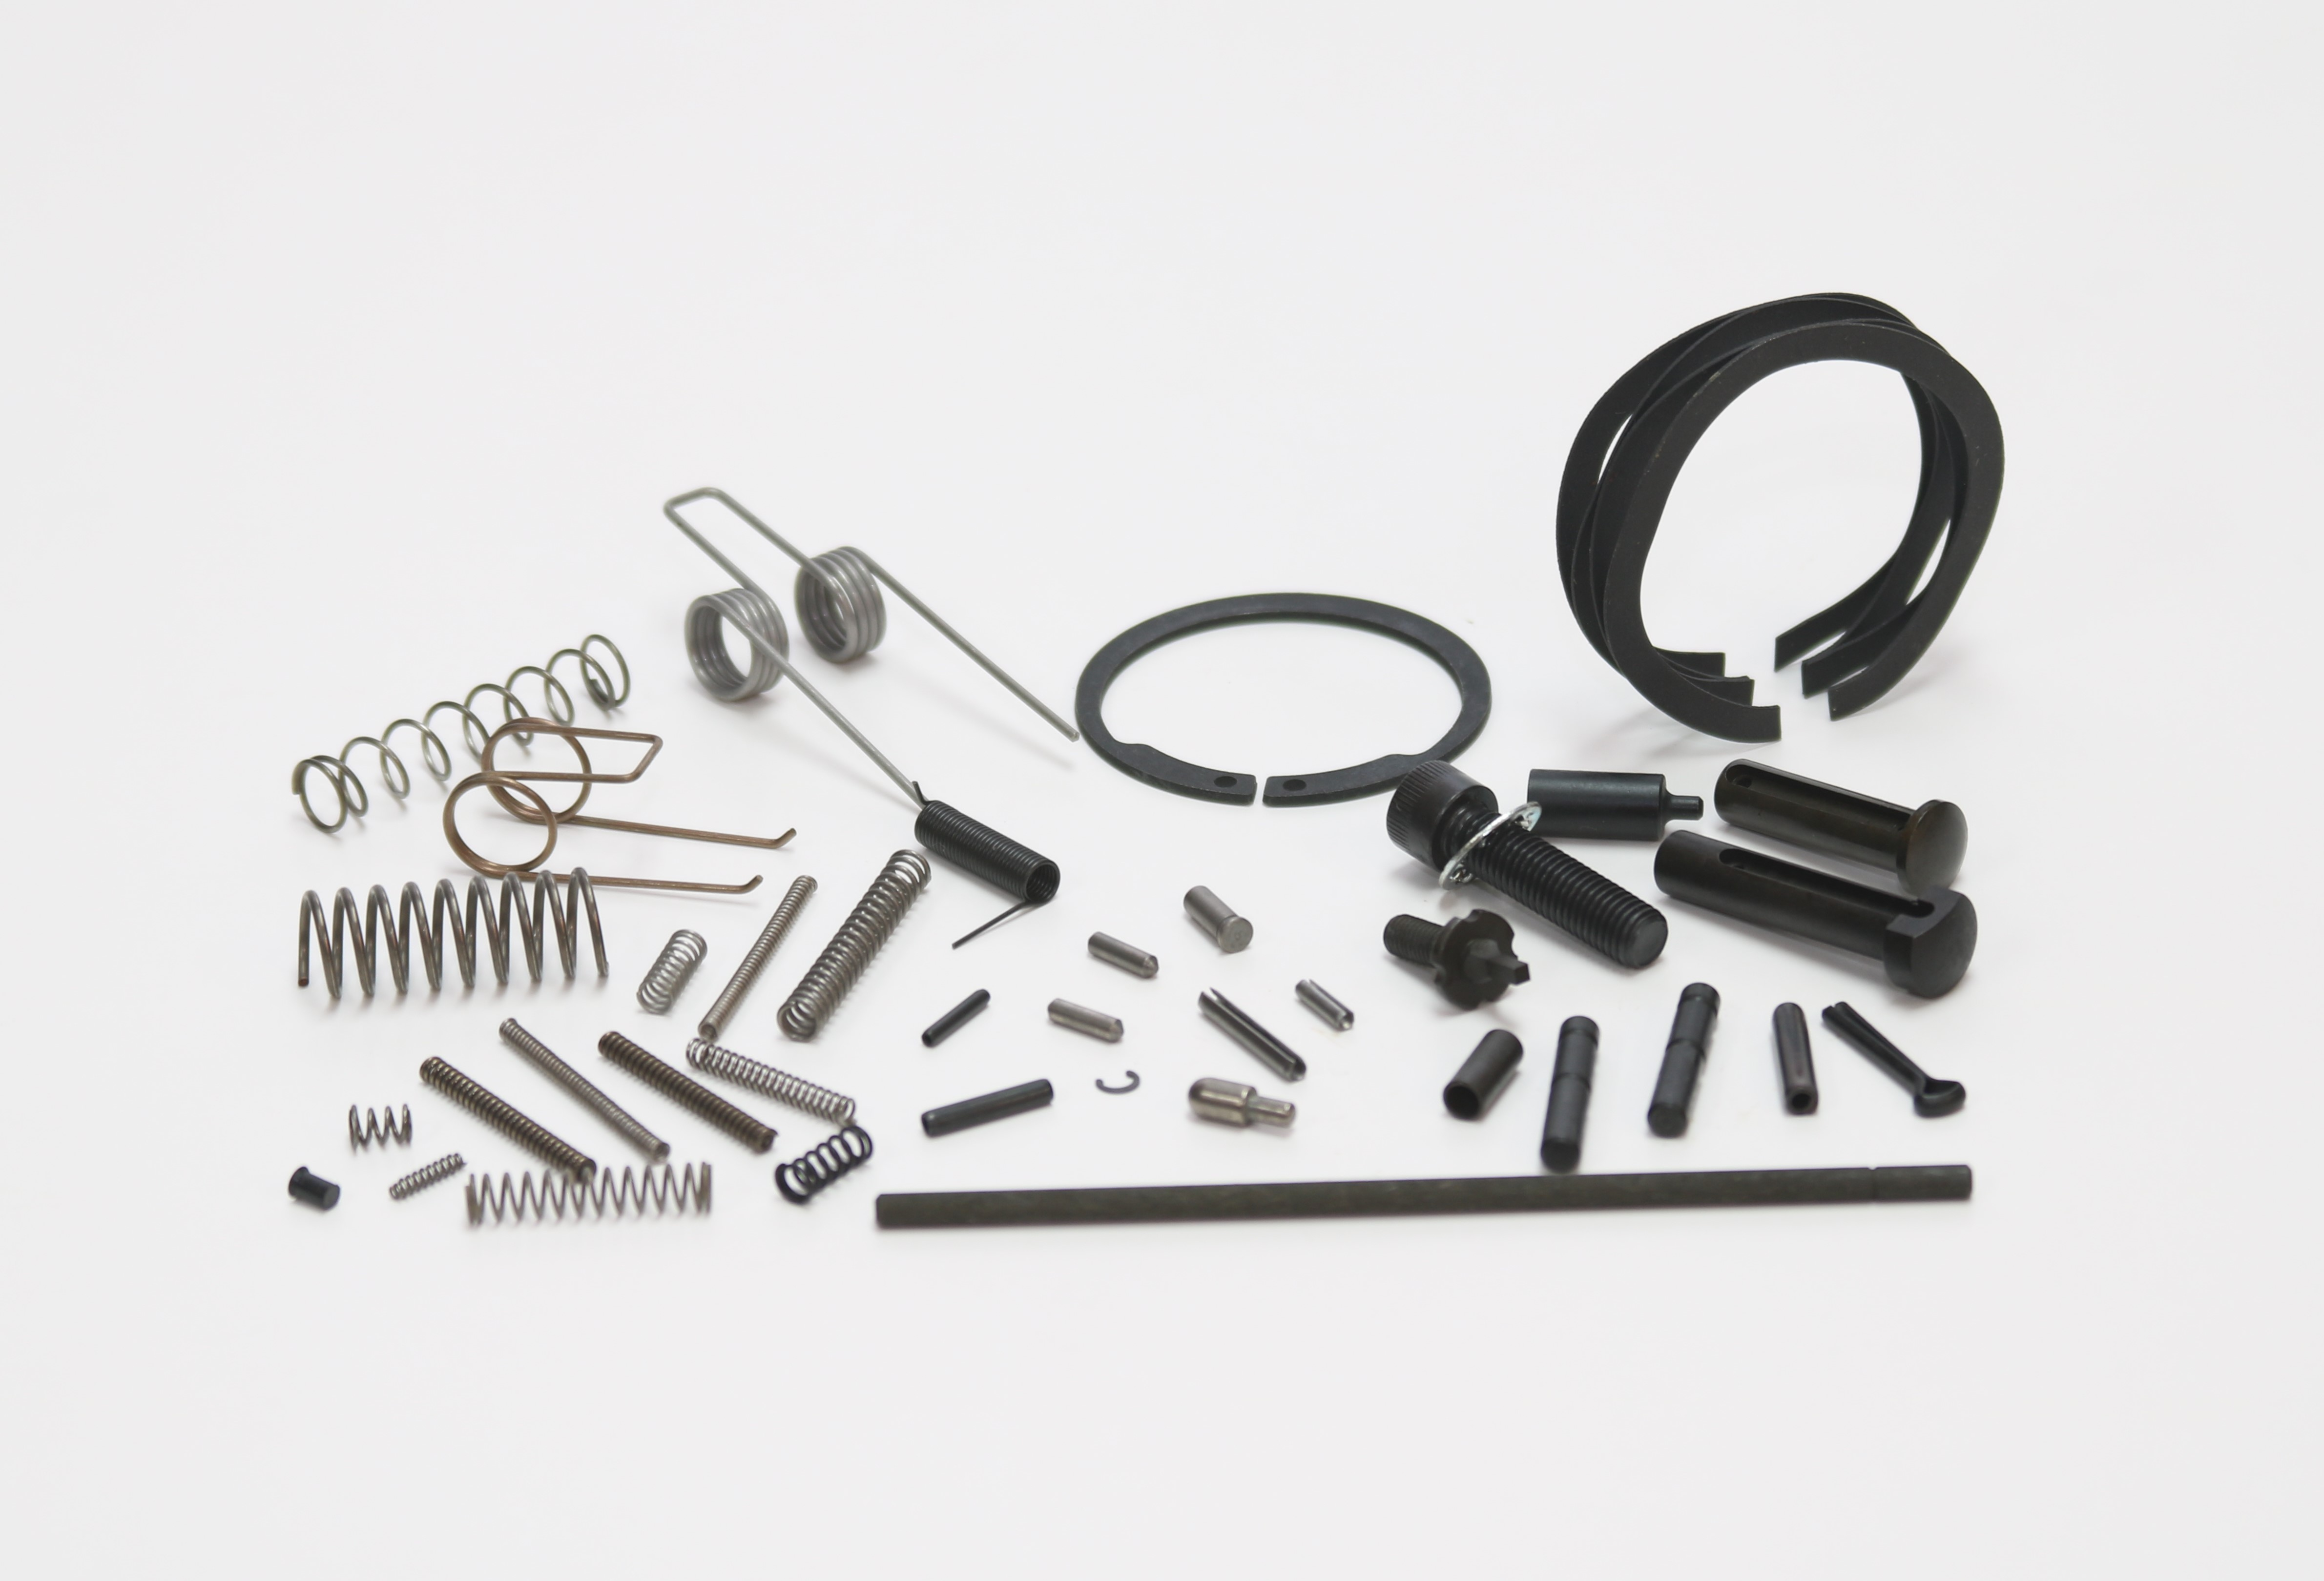 AR-15/M16 Small Parts kit – Choate Machine & Tool